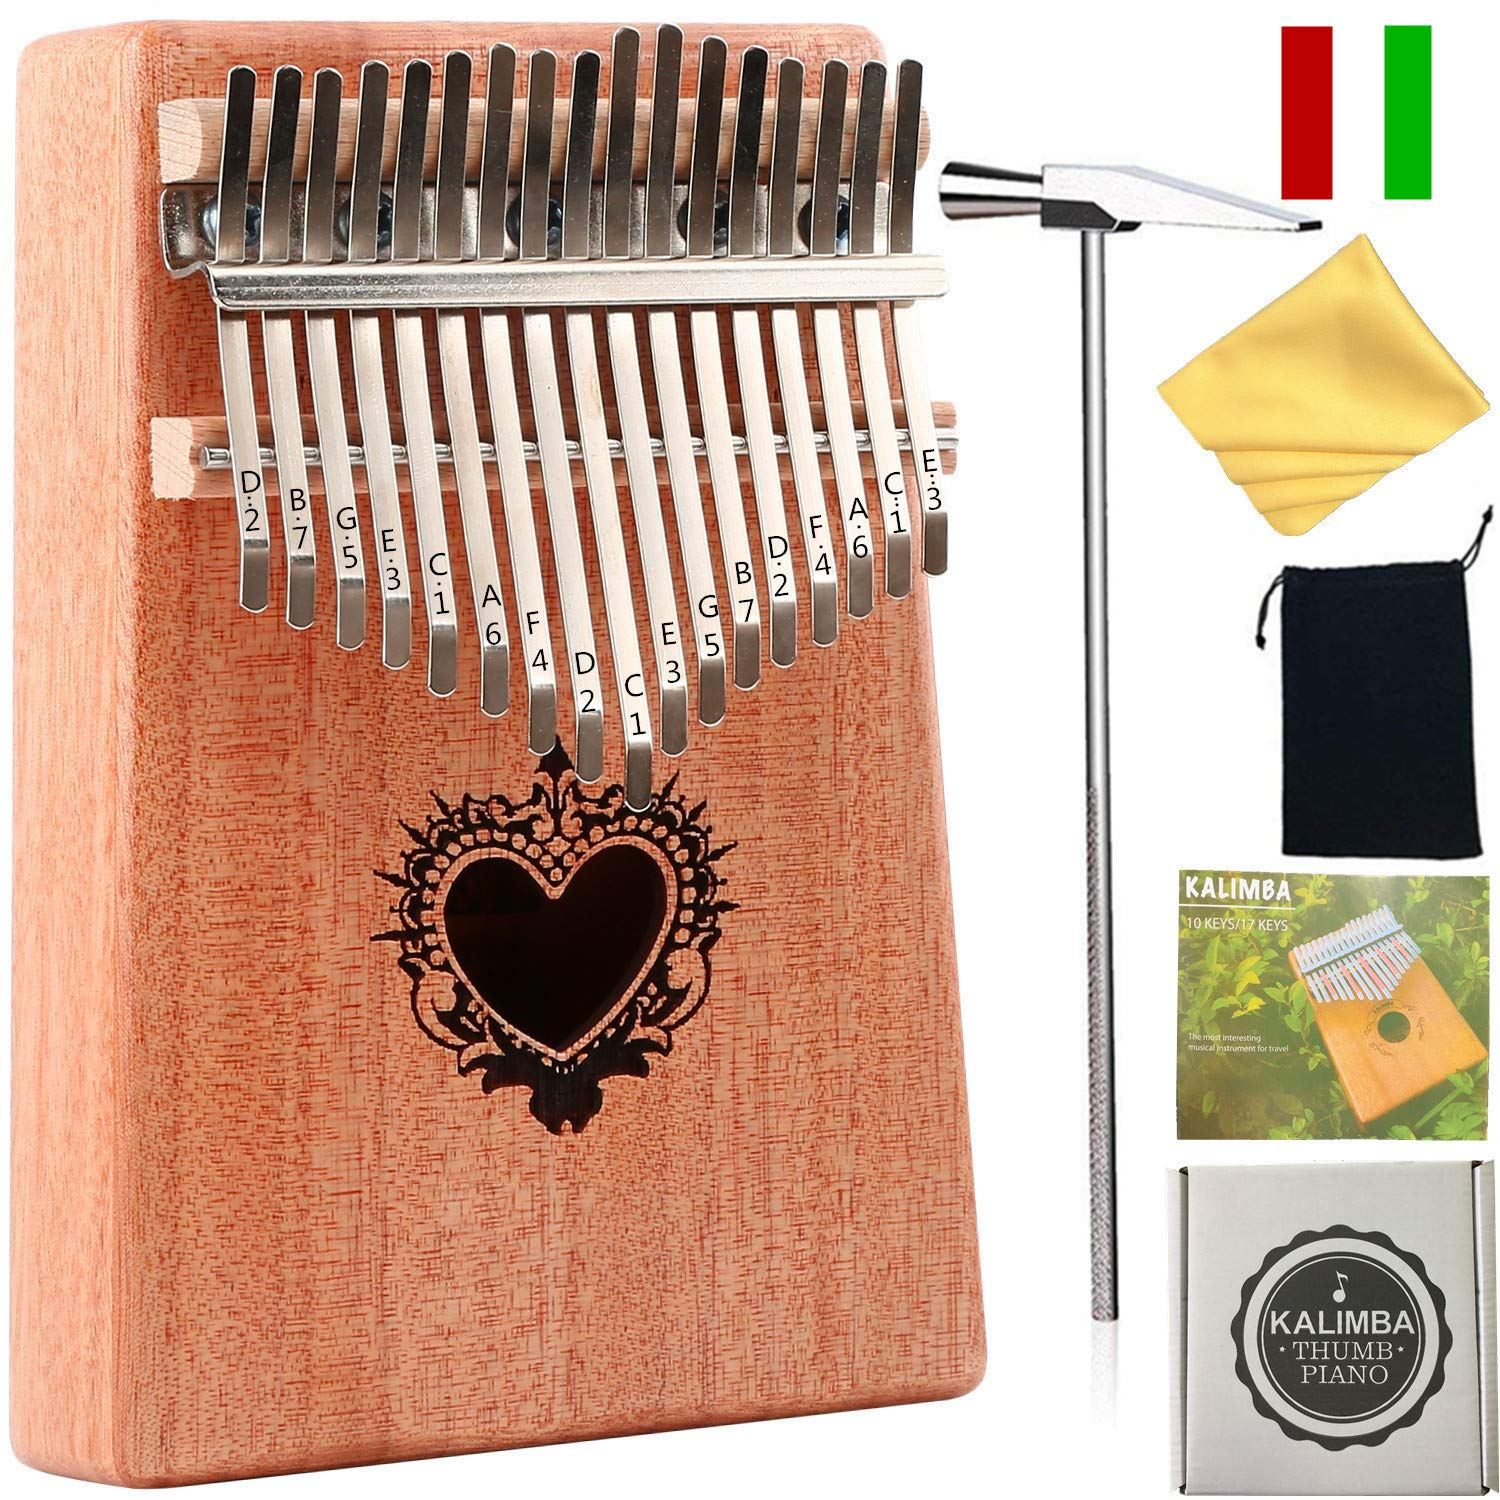 Thumb Piano Ranch Kalimba 17 keys Finger Mbira with Online 6 Free Lessons Solid Wood Mahogany Christmas Gifts with Bag/Scale Sticker/Tune Hammer/Music Book - Angel Heart